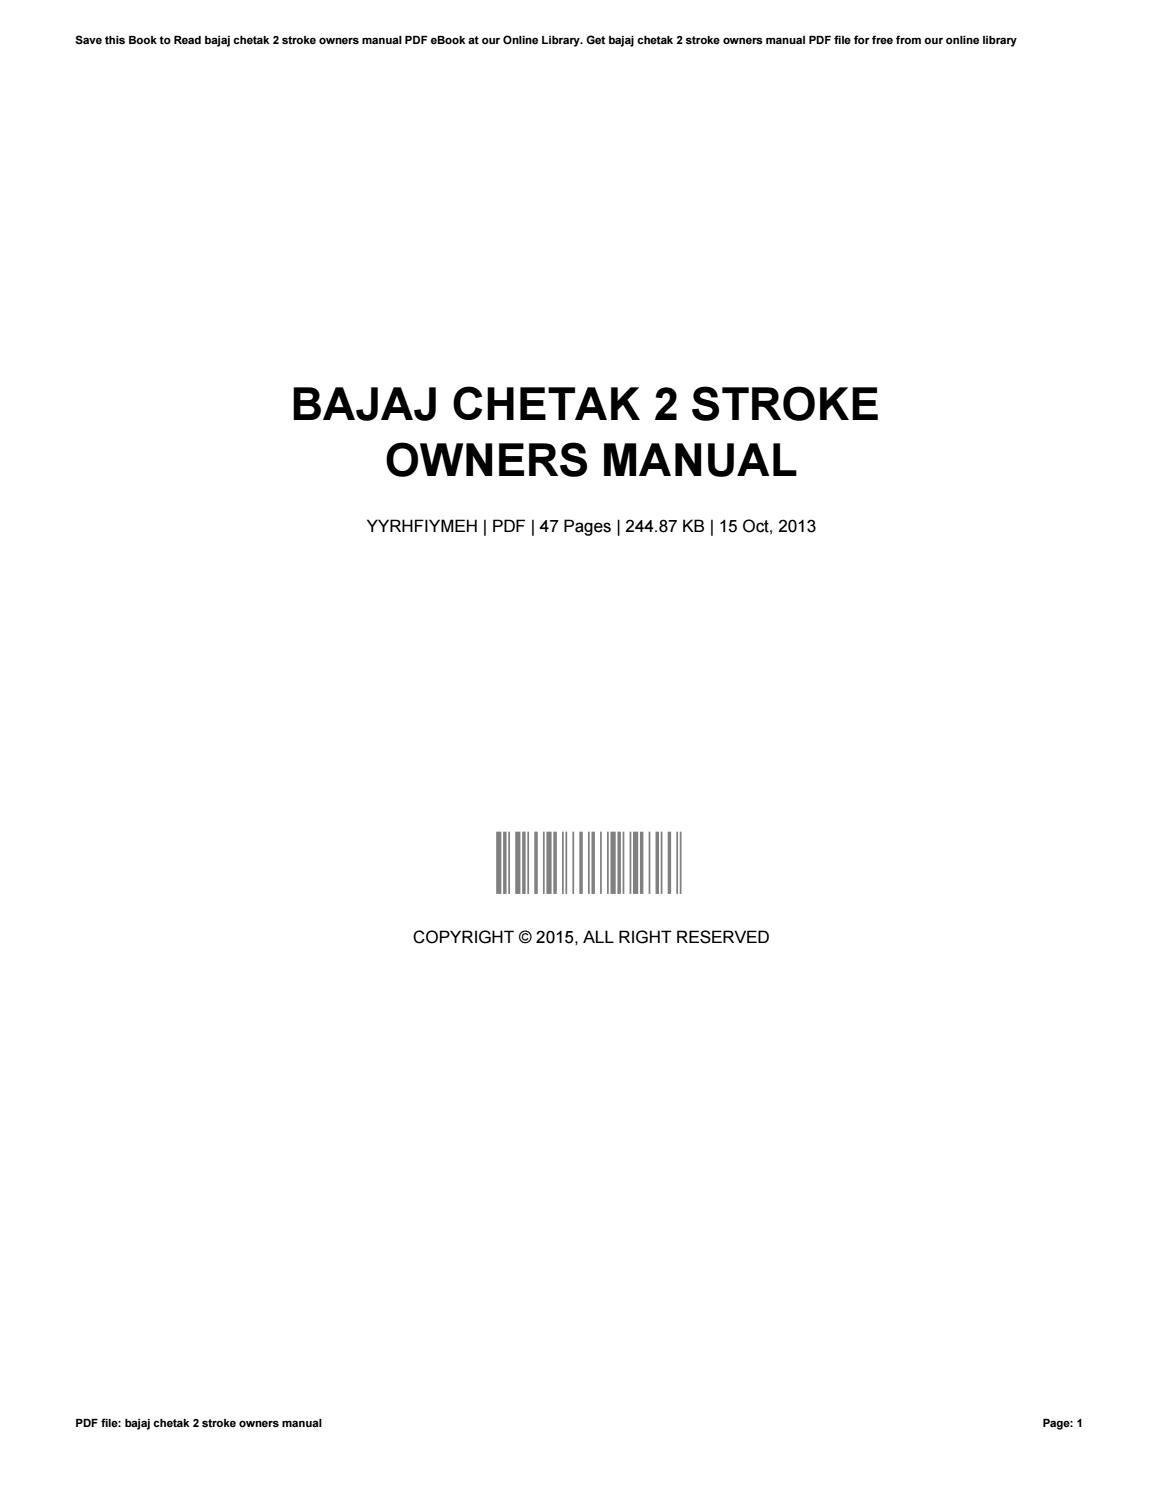 The Manual Is For A Bajaj 2 Stroke